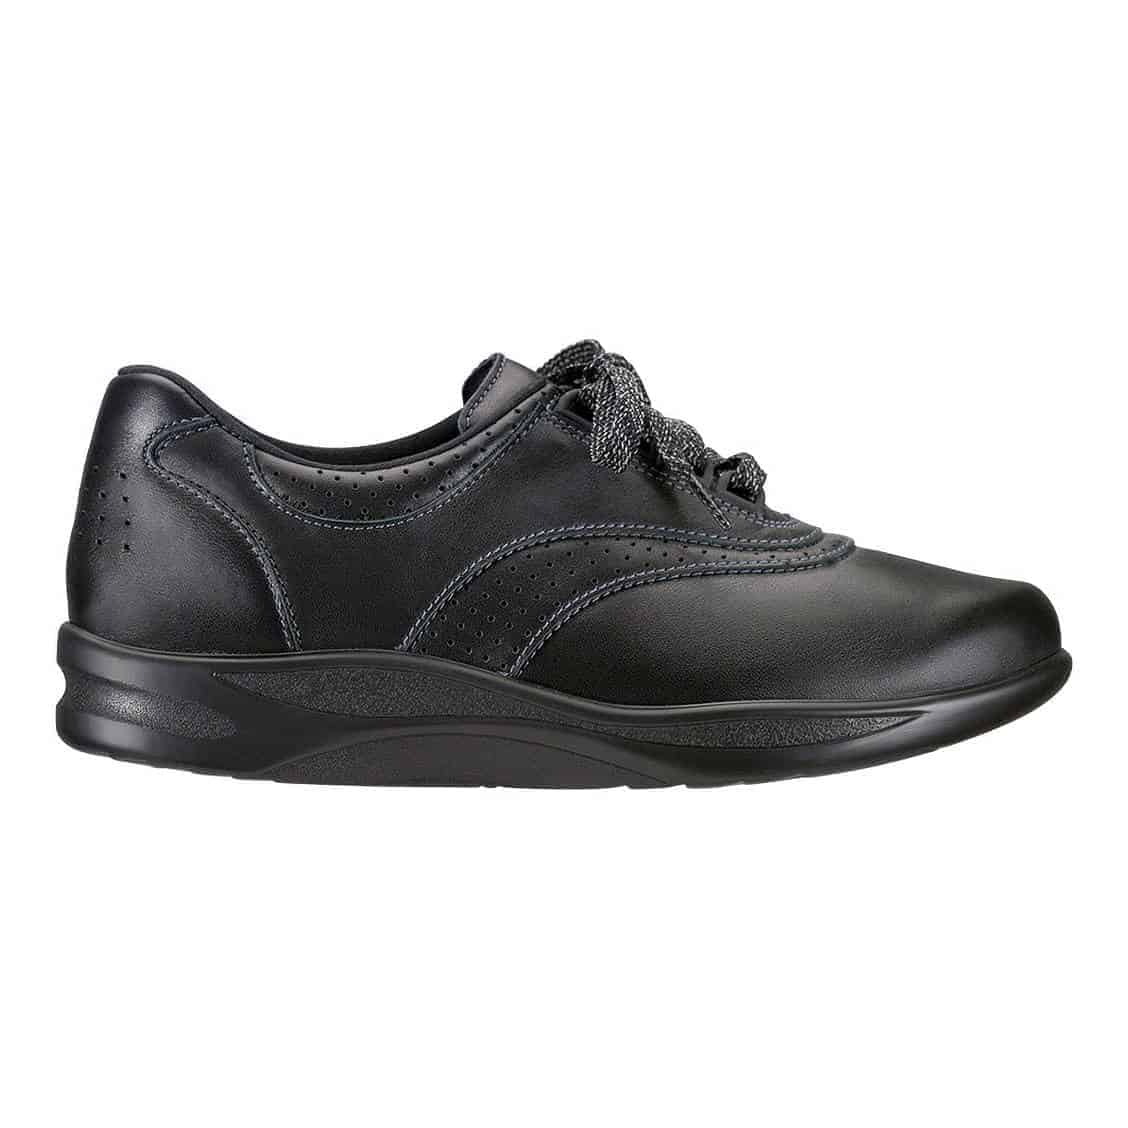 sas-womens-walk-easy-black-2380-013-3